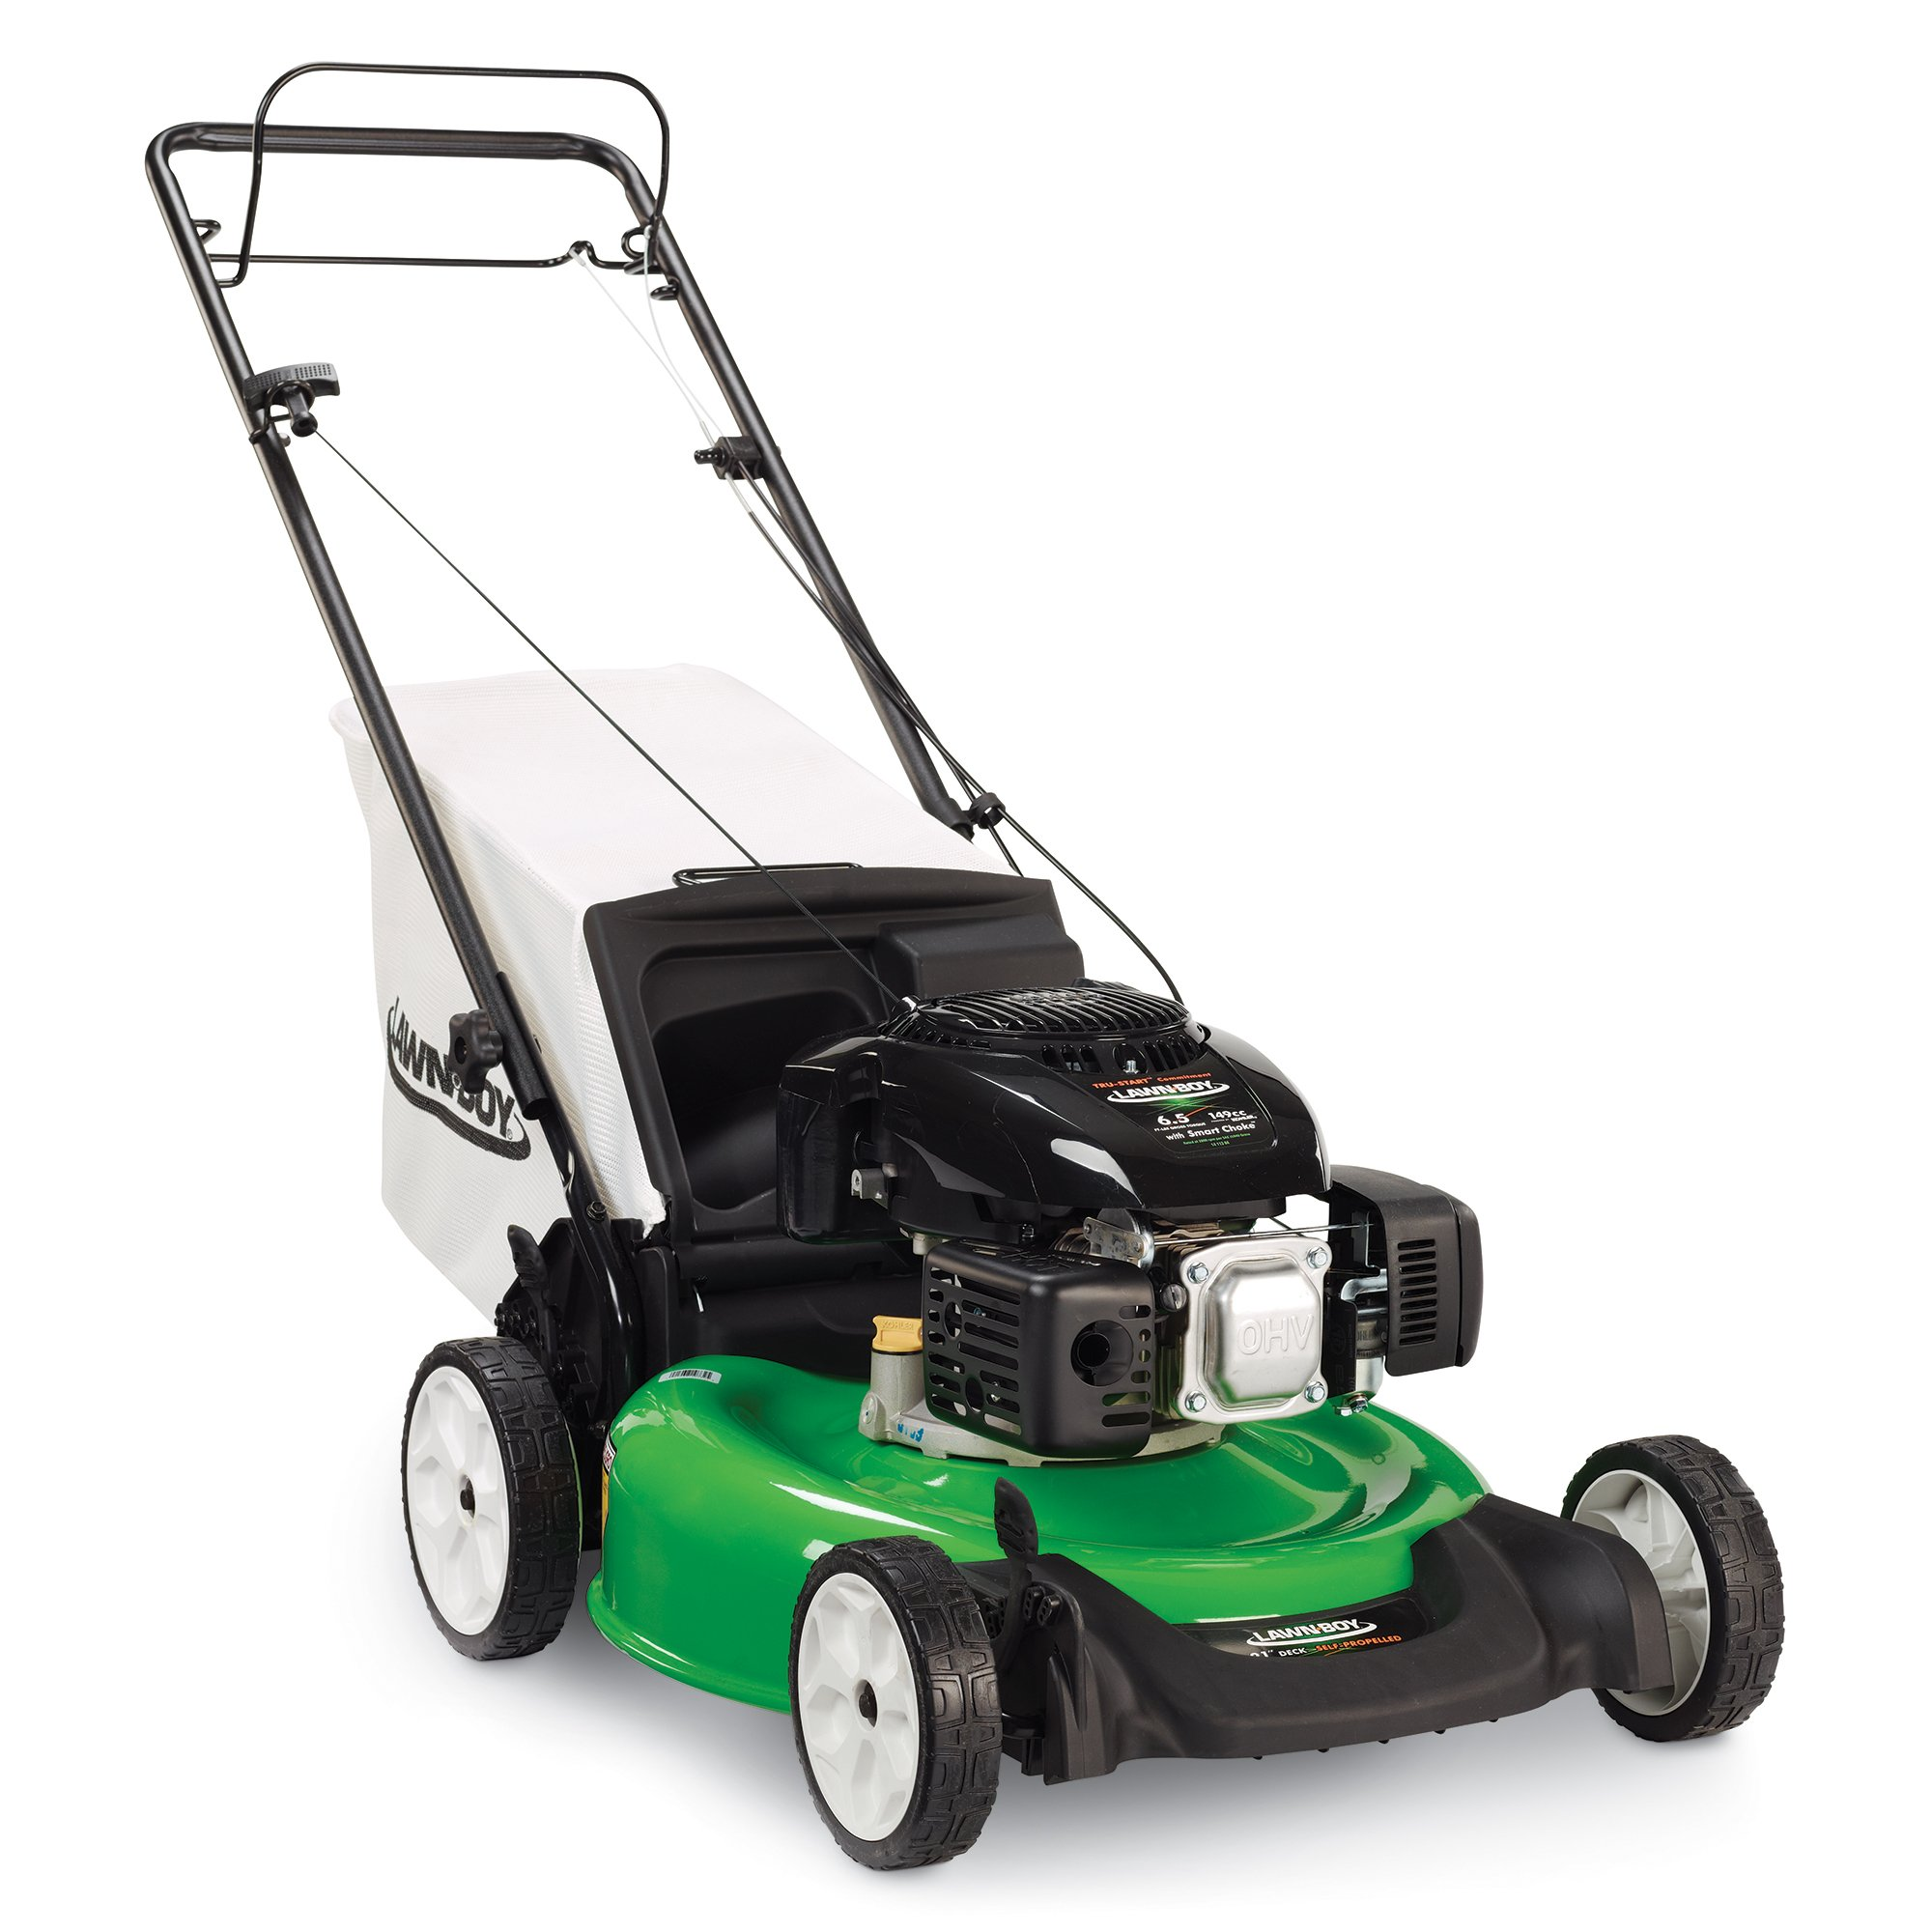 Lawn Boy 17732 21 Inch Discharge Propelled